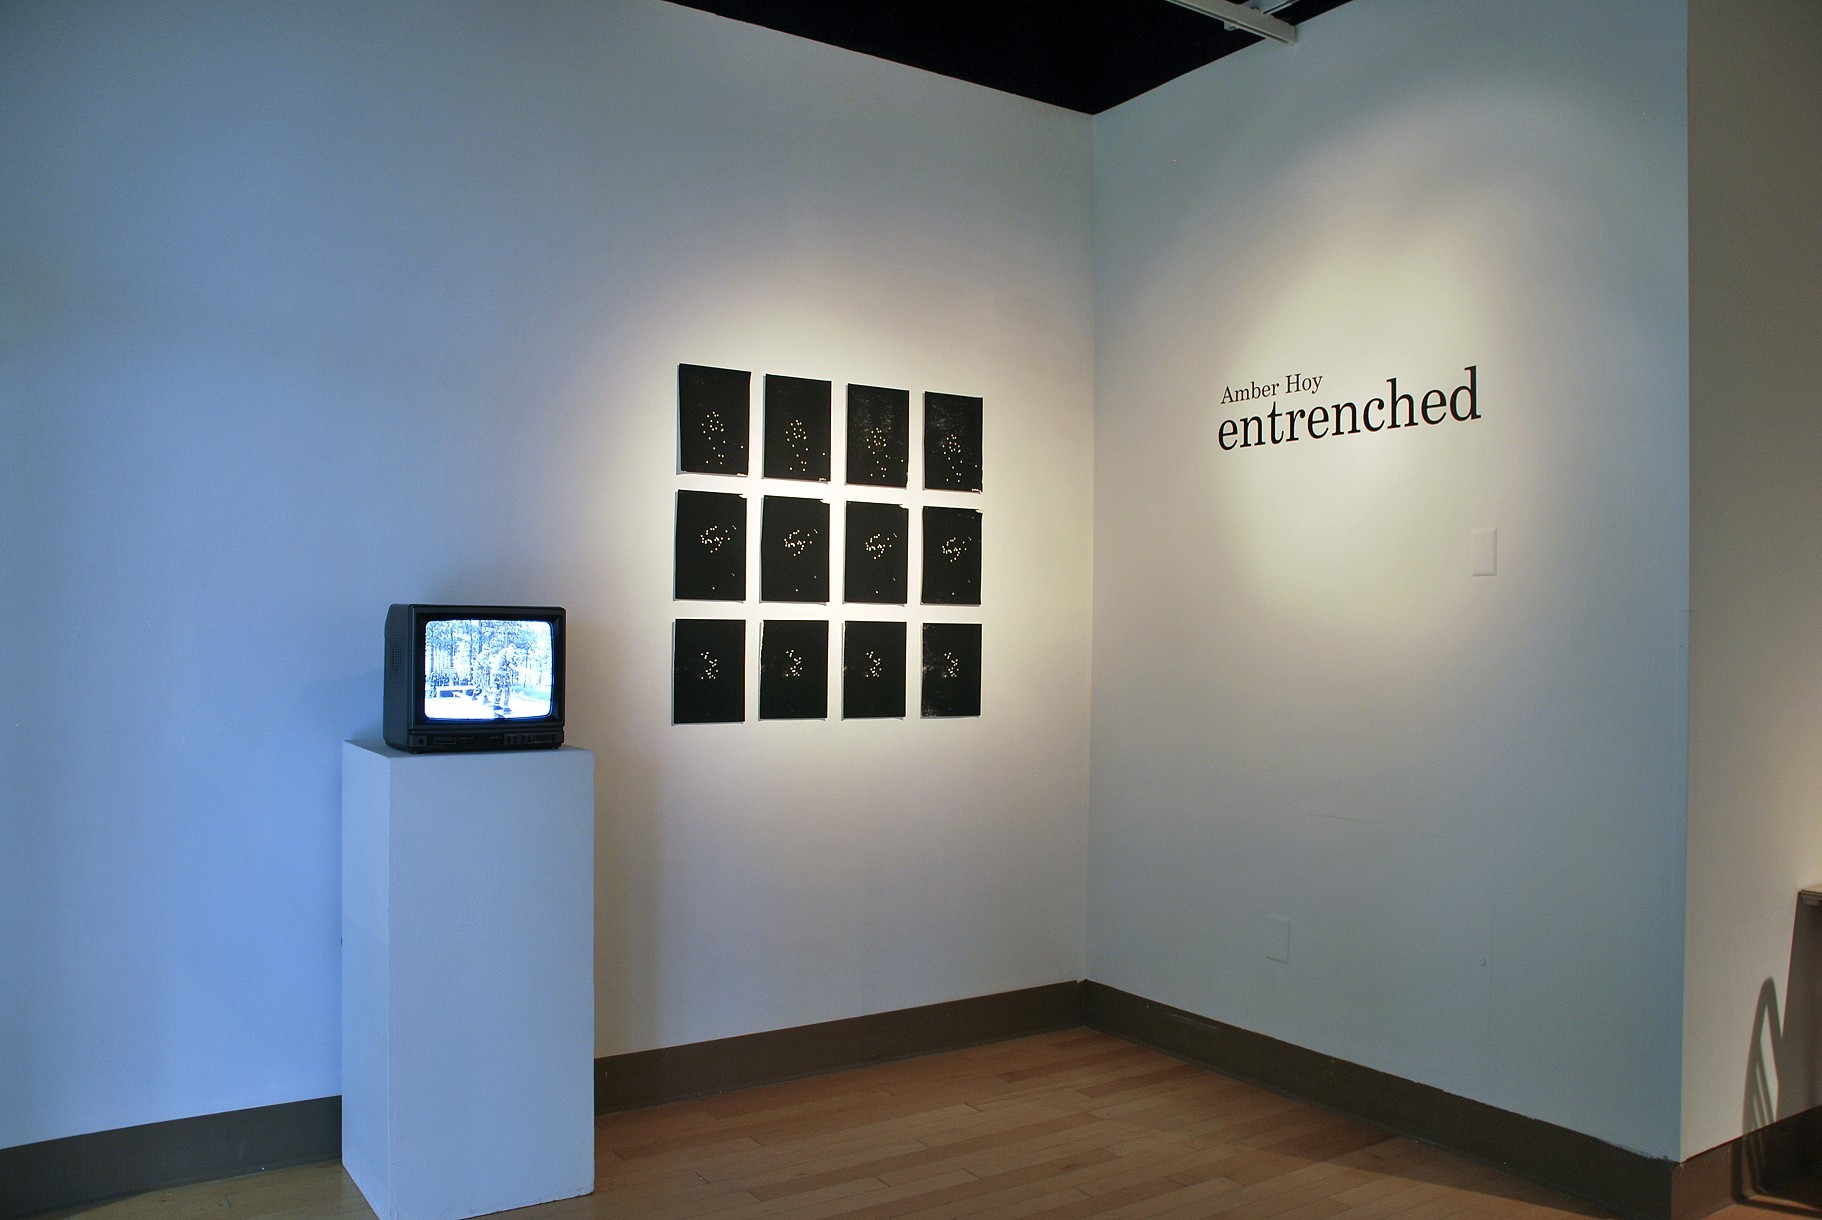 """From the series """"entrenched"""". Photo by Amber Hoy."""